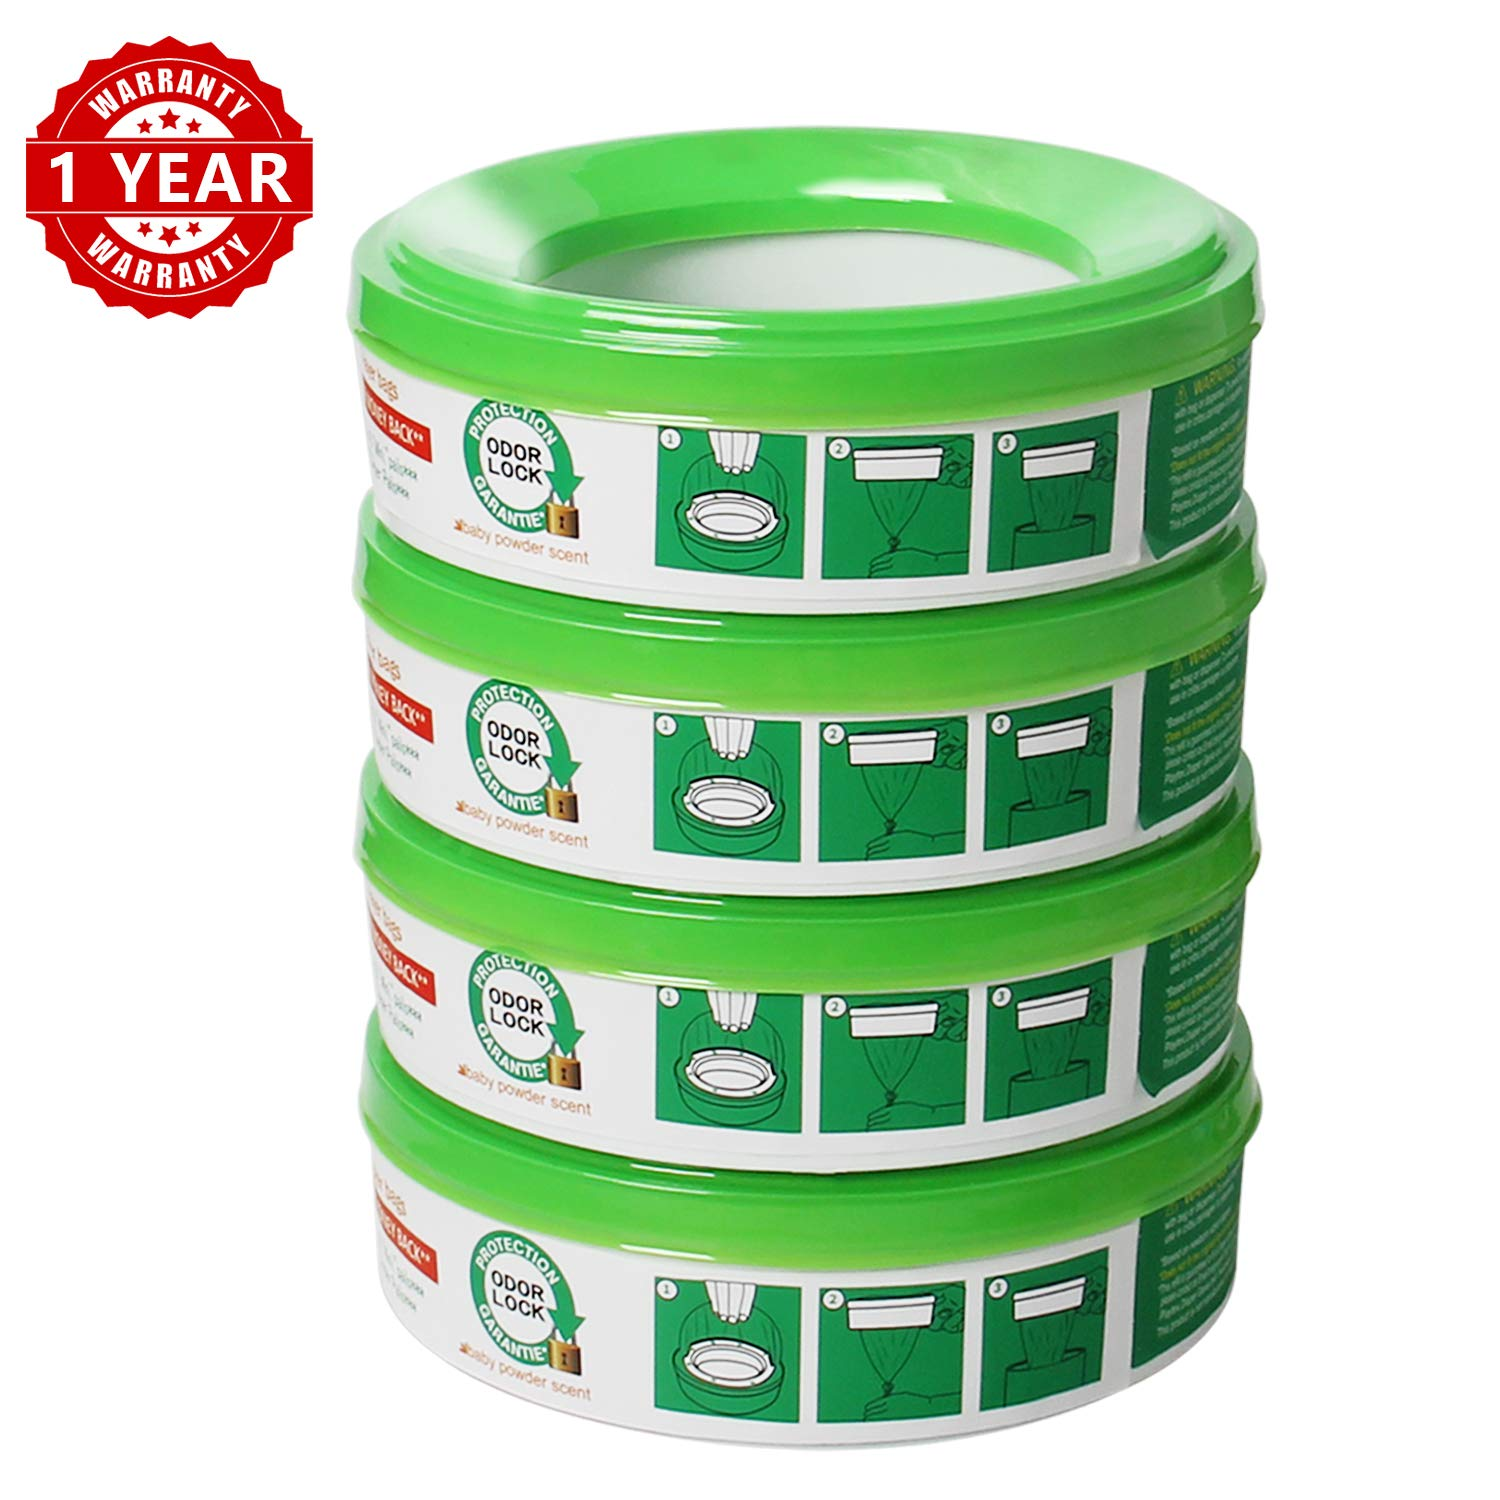 Refill for Diaper Genie and Diaper Pails,4-6 Months Supply ,280 Count, 4 Pack -Green